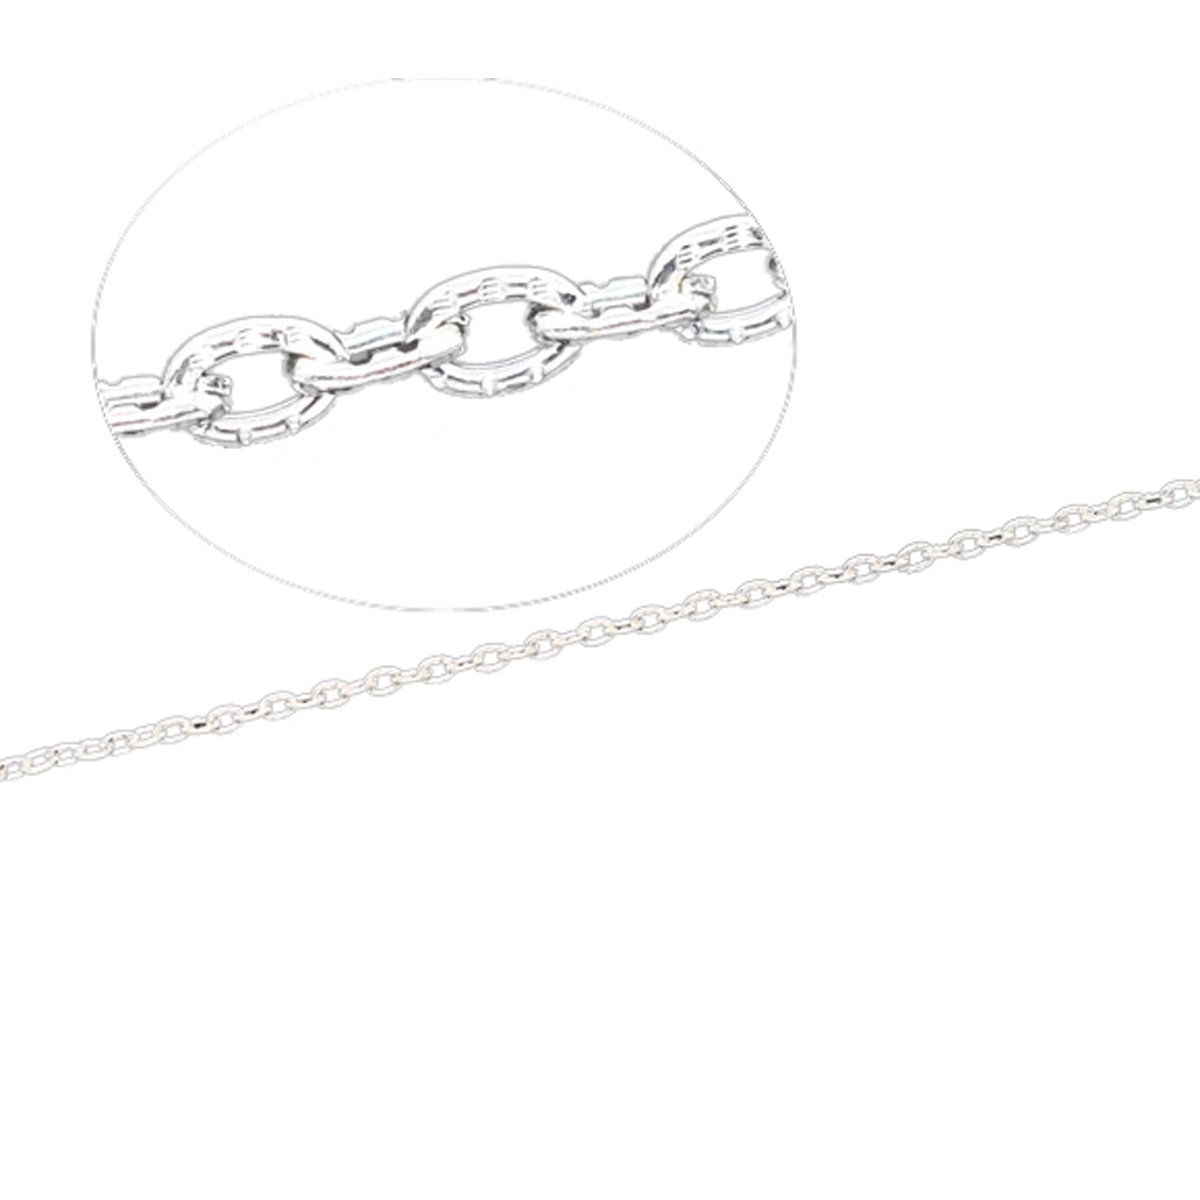 Housweety 10M Silver Plated Textured Cable Link Chain 3x2mm